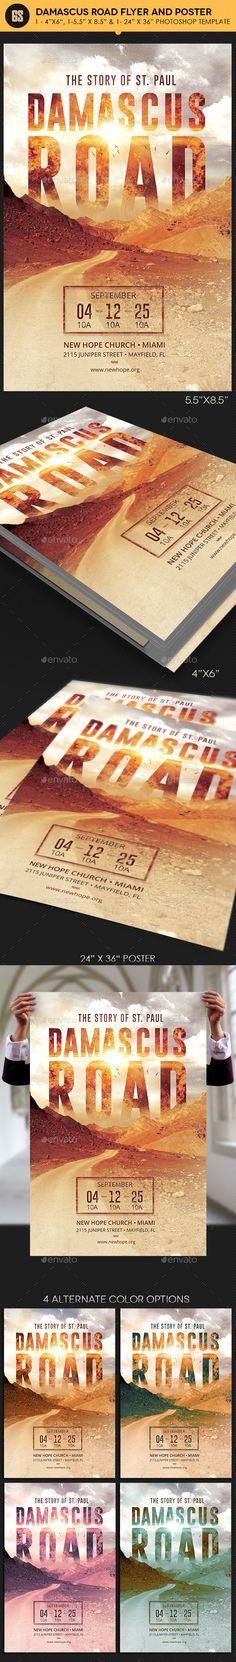 Damascus Road Flyer Poster Template — Photoshop PSD #history #bible • Available here → https://graphicriver.net/item/damascus-road-flyer-poster-template/14746297?ref=pxcr